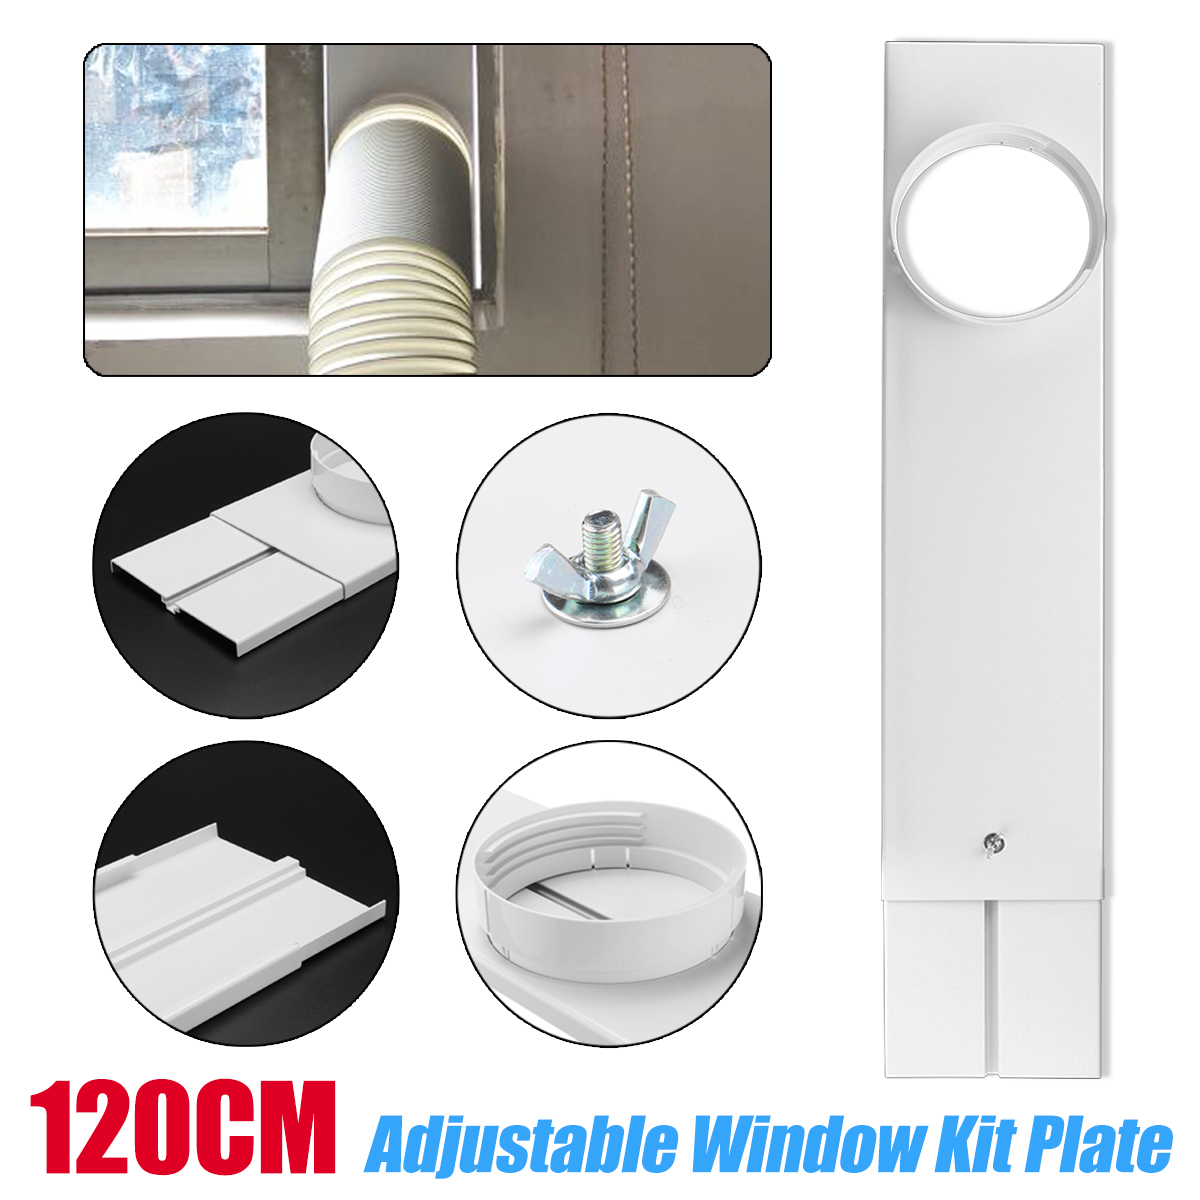 120cm Exhaust Hose/Tube Connector Adjustable Window Kit Plate For Portable Air Conditioner Window Kit Plate